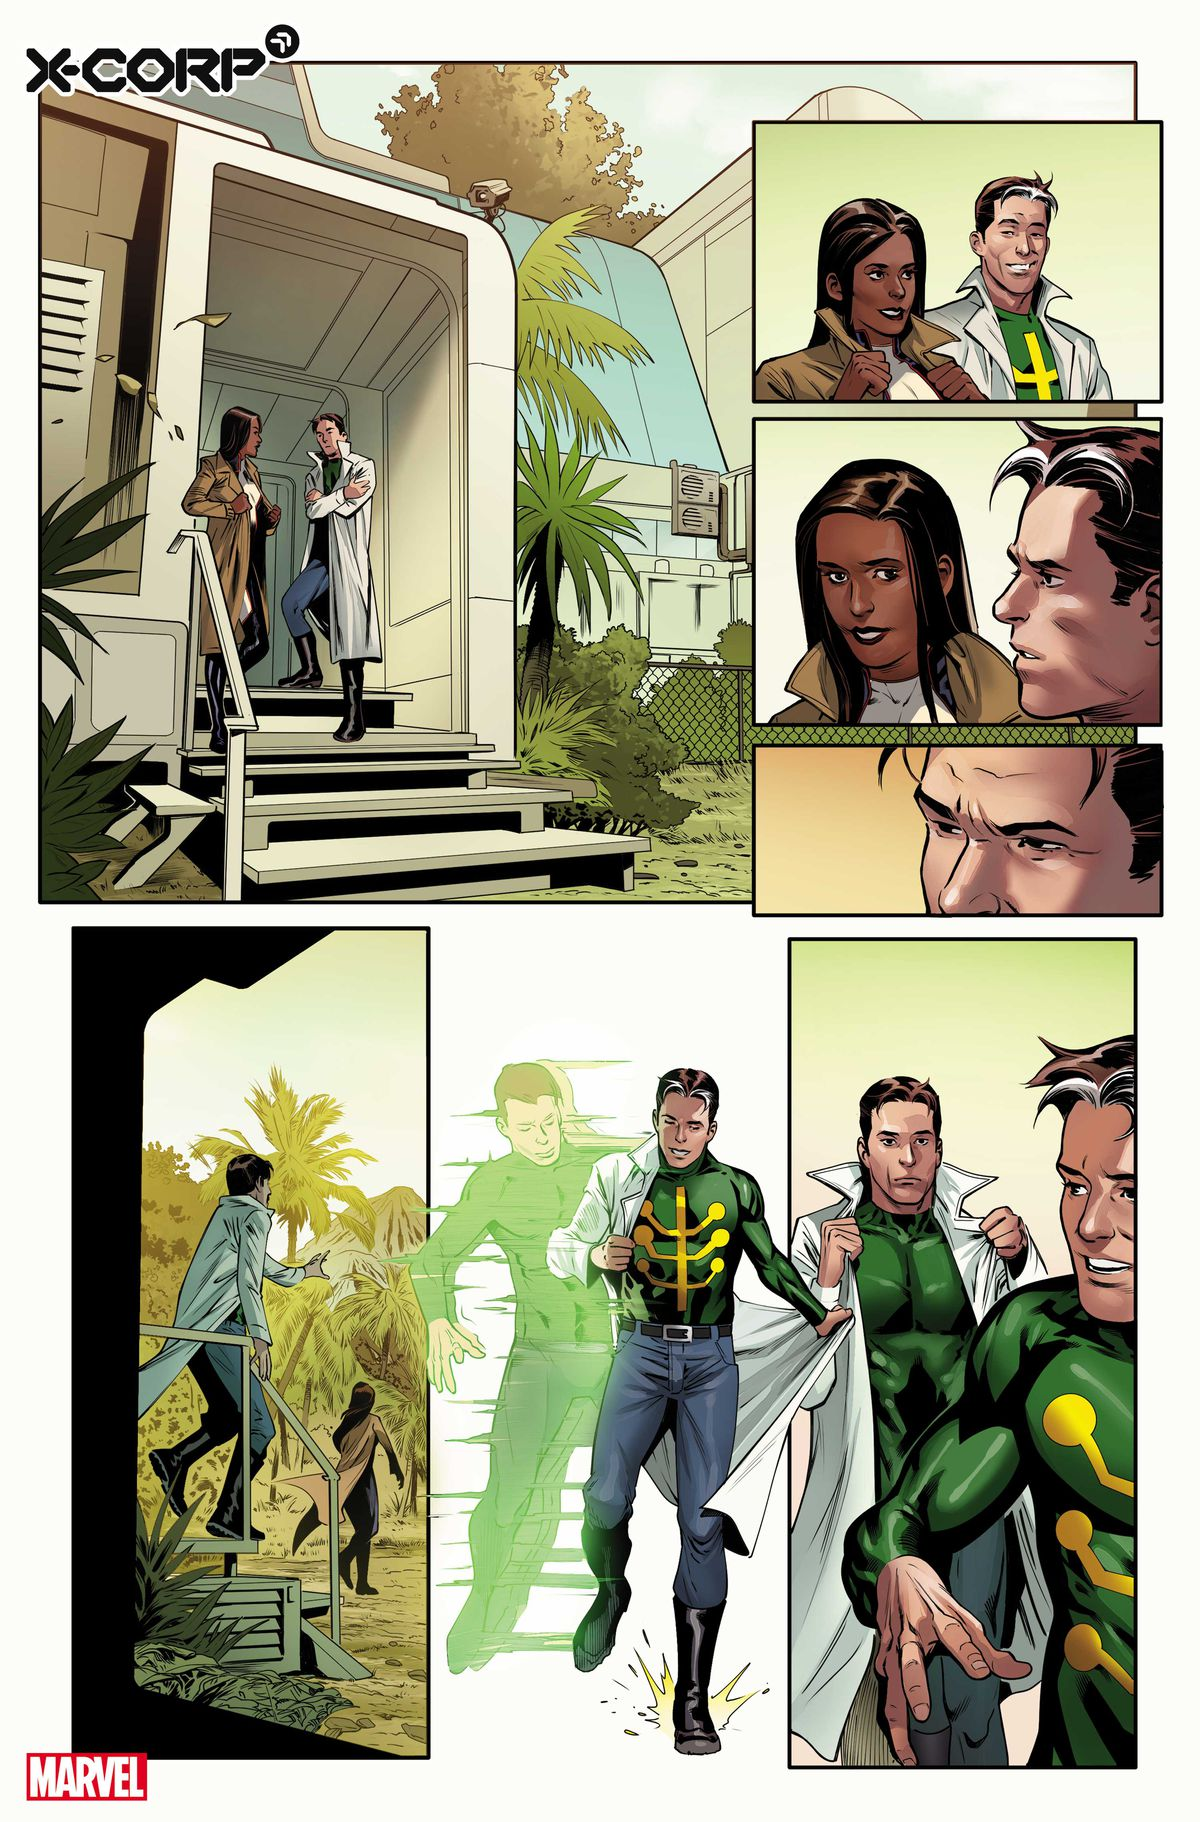 Monet St. Croix meets with Jamie Madrox, the multiple man in preview art for X-Corp # 1, Marvel Comics (2021).